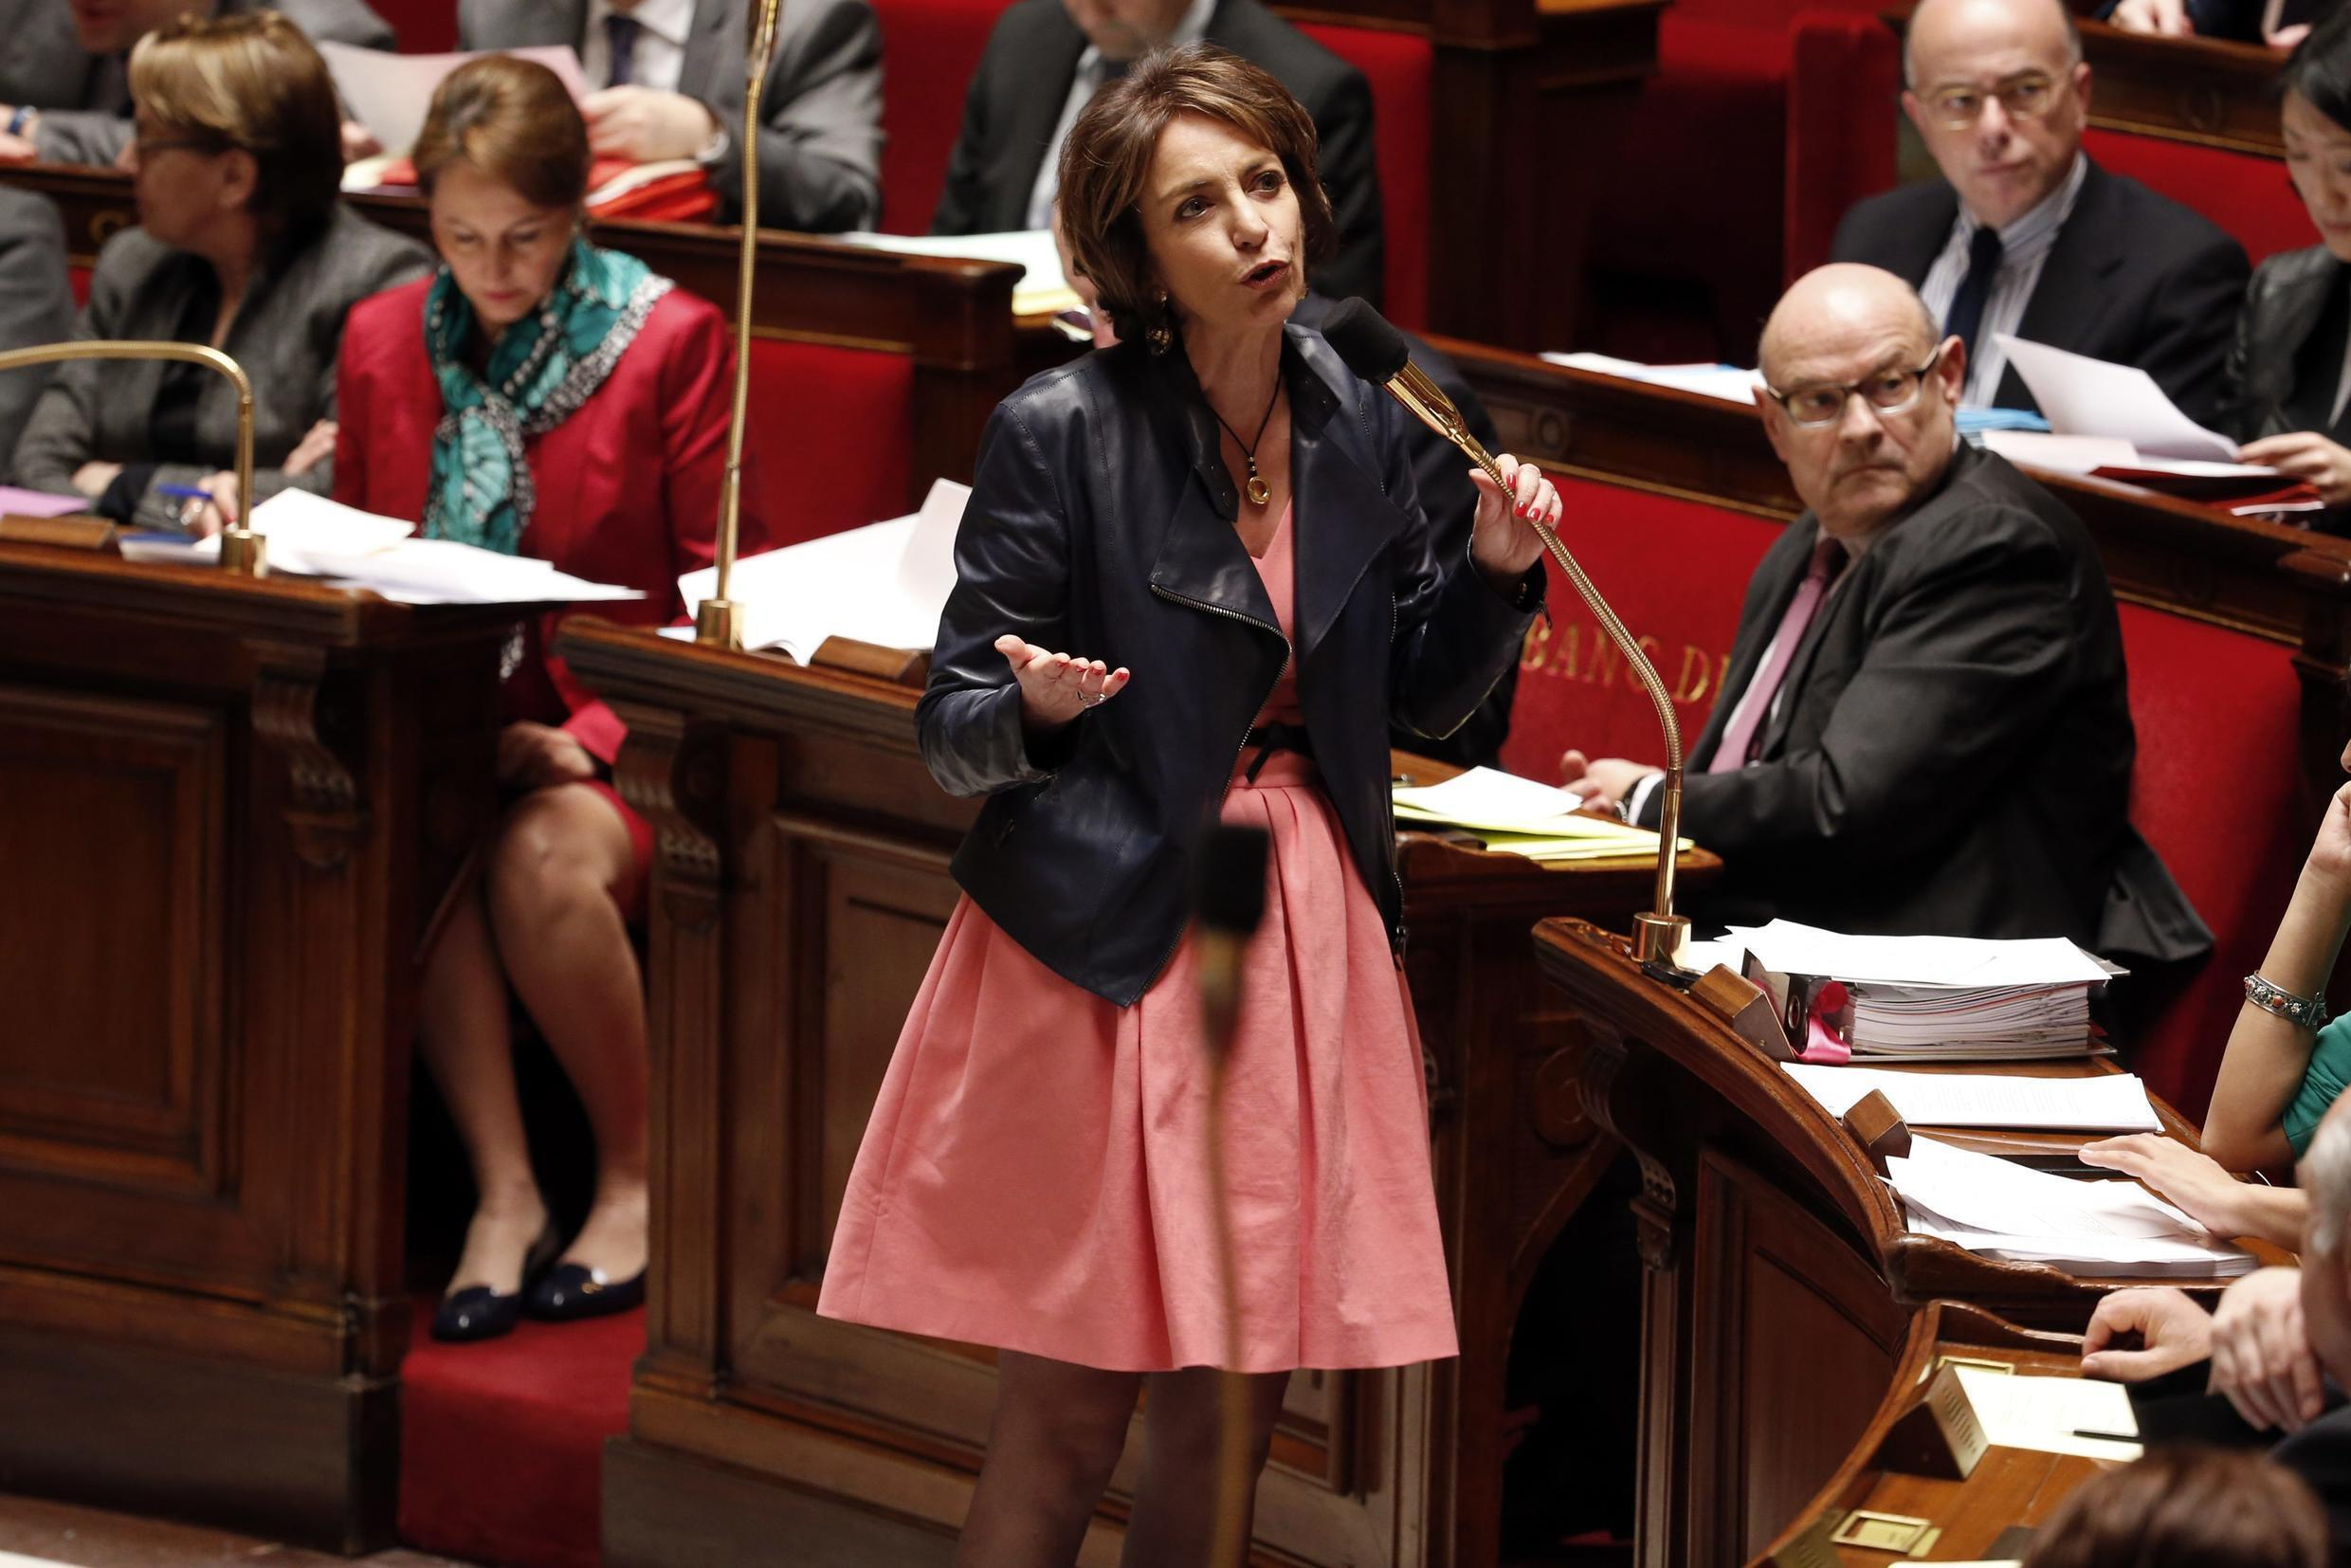 French Minister for Social Affairs, Health and Women's Rights Marisol Touraine speaks during the questions to the government session at the National Assembly in Paris March 17, 2015.